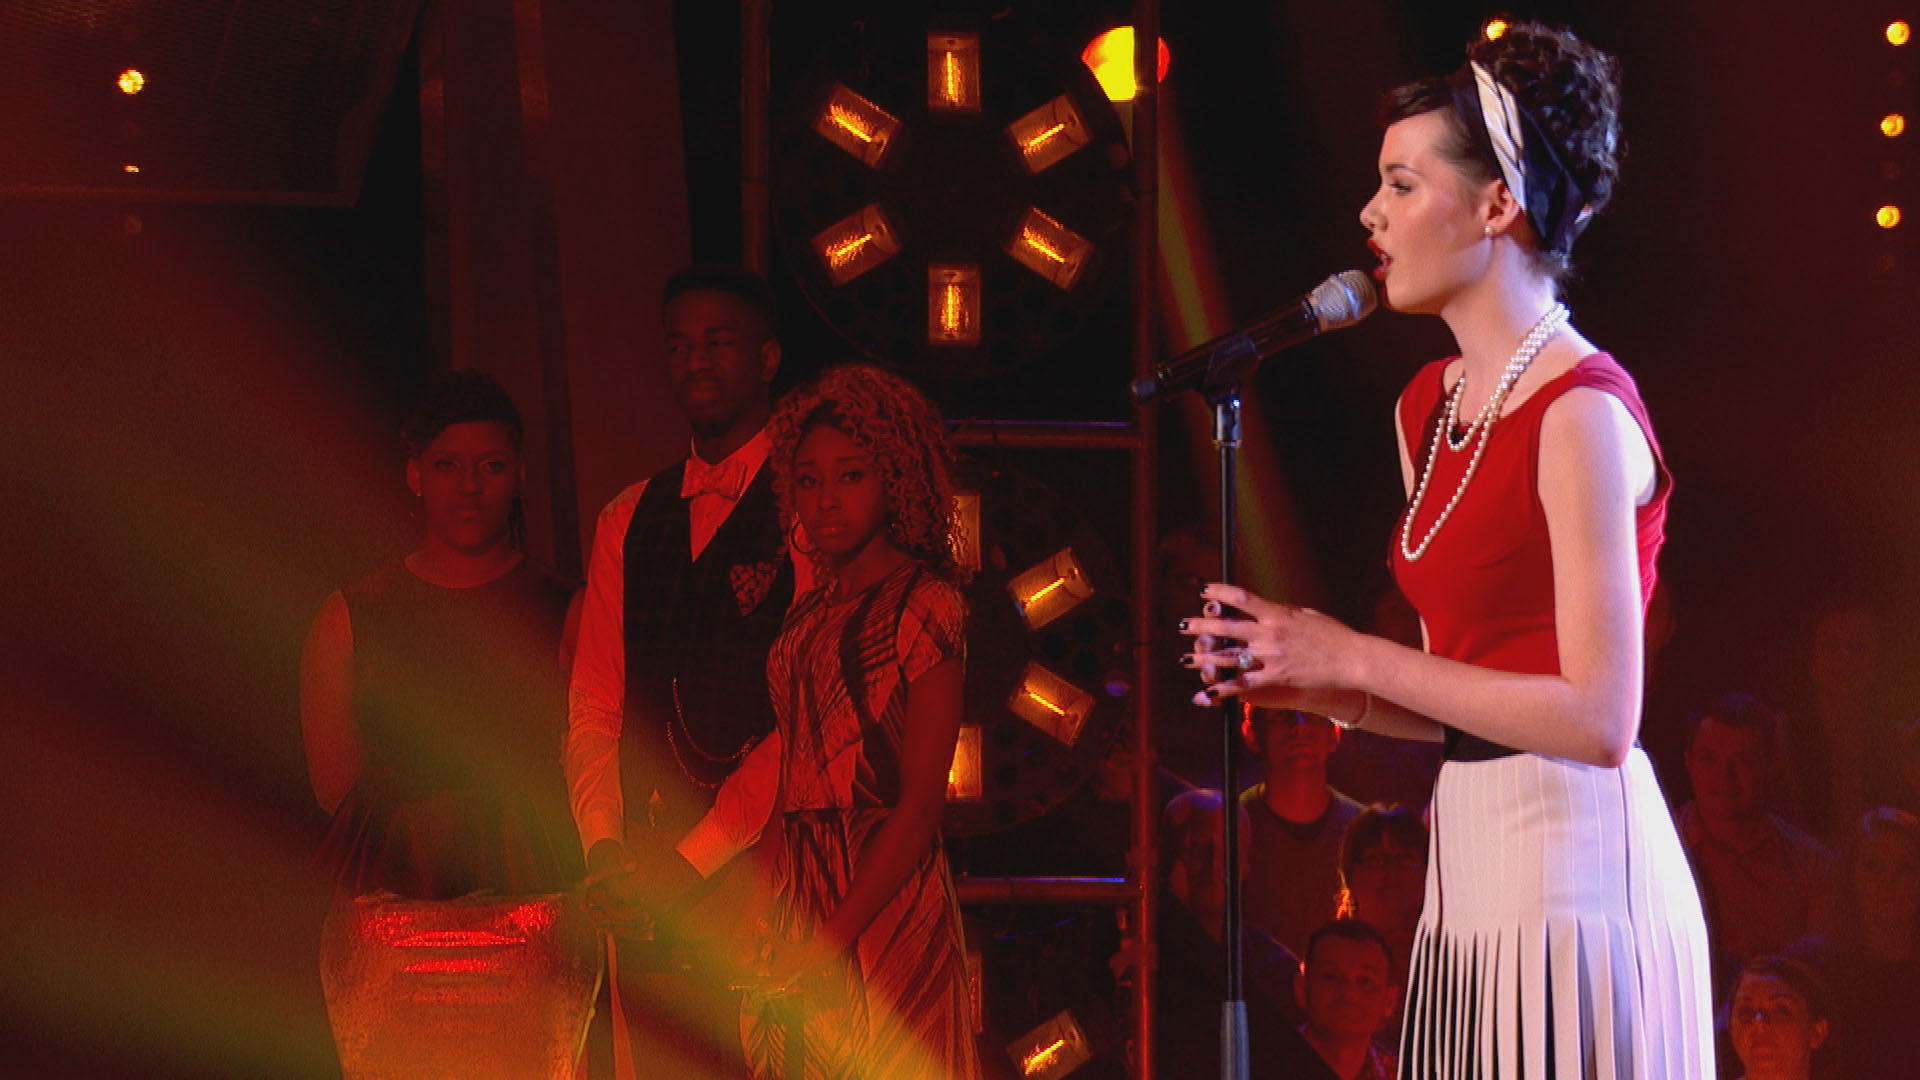 Sophie-May Williams has drawn a lot of attention since she debuted on The Voice series 3 (Picture: BBC)